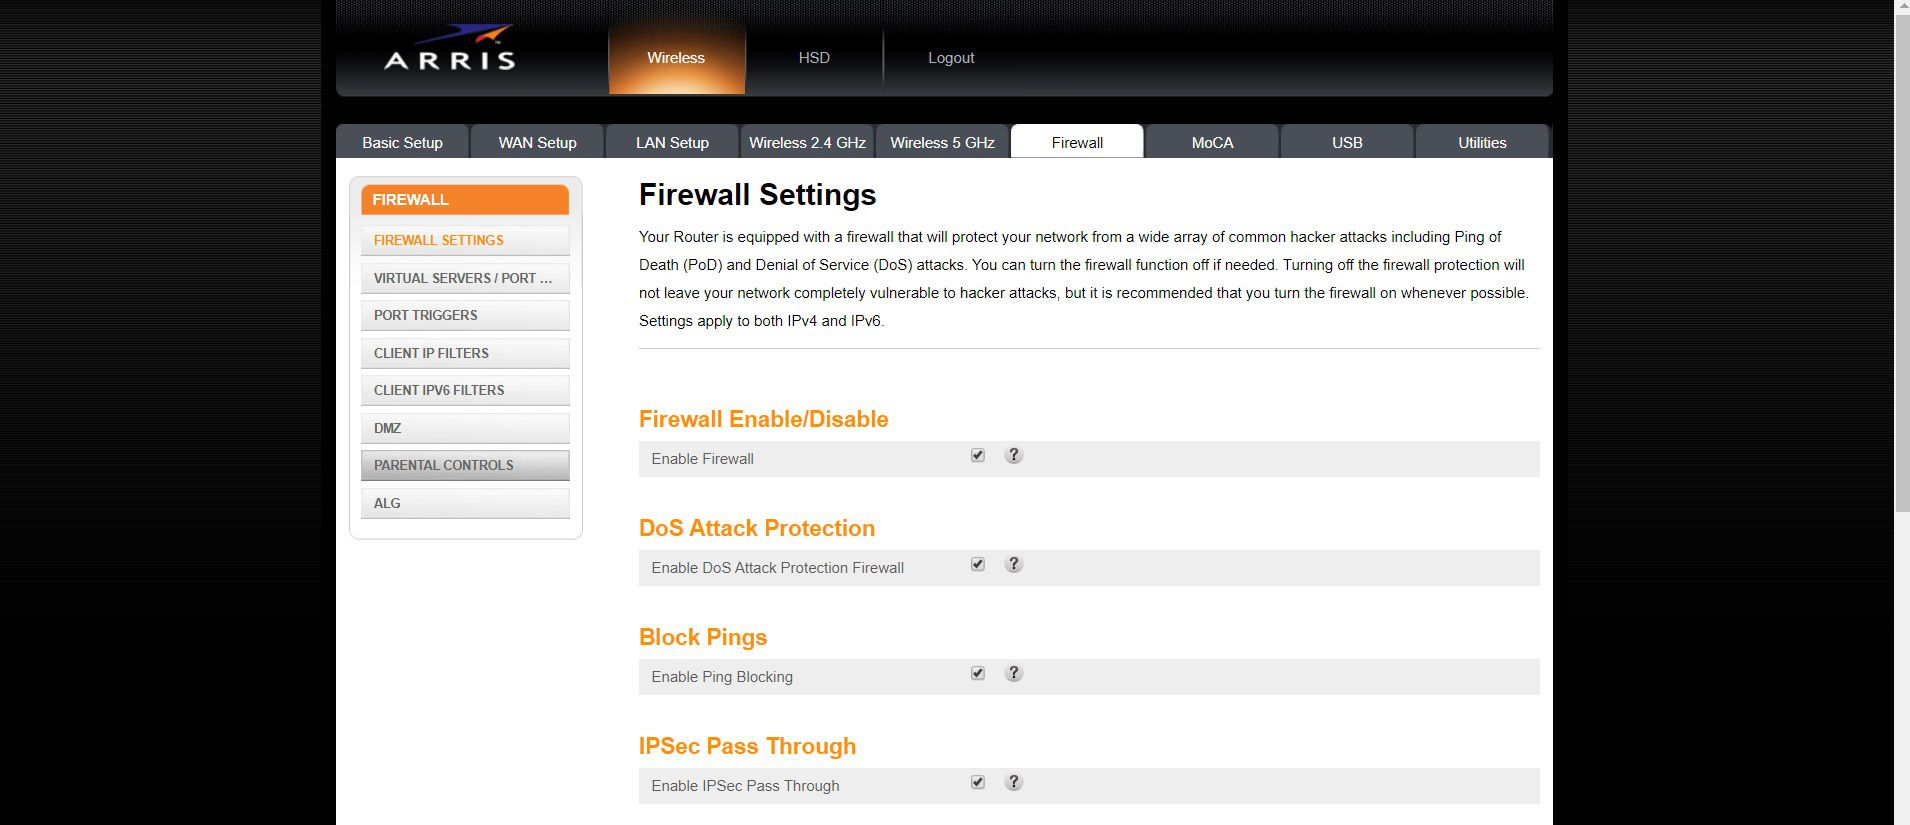 You can find Parental Controls under the Firewall Settings of an Arris router